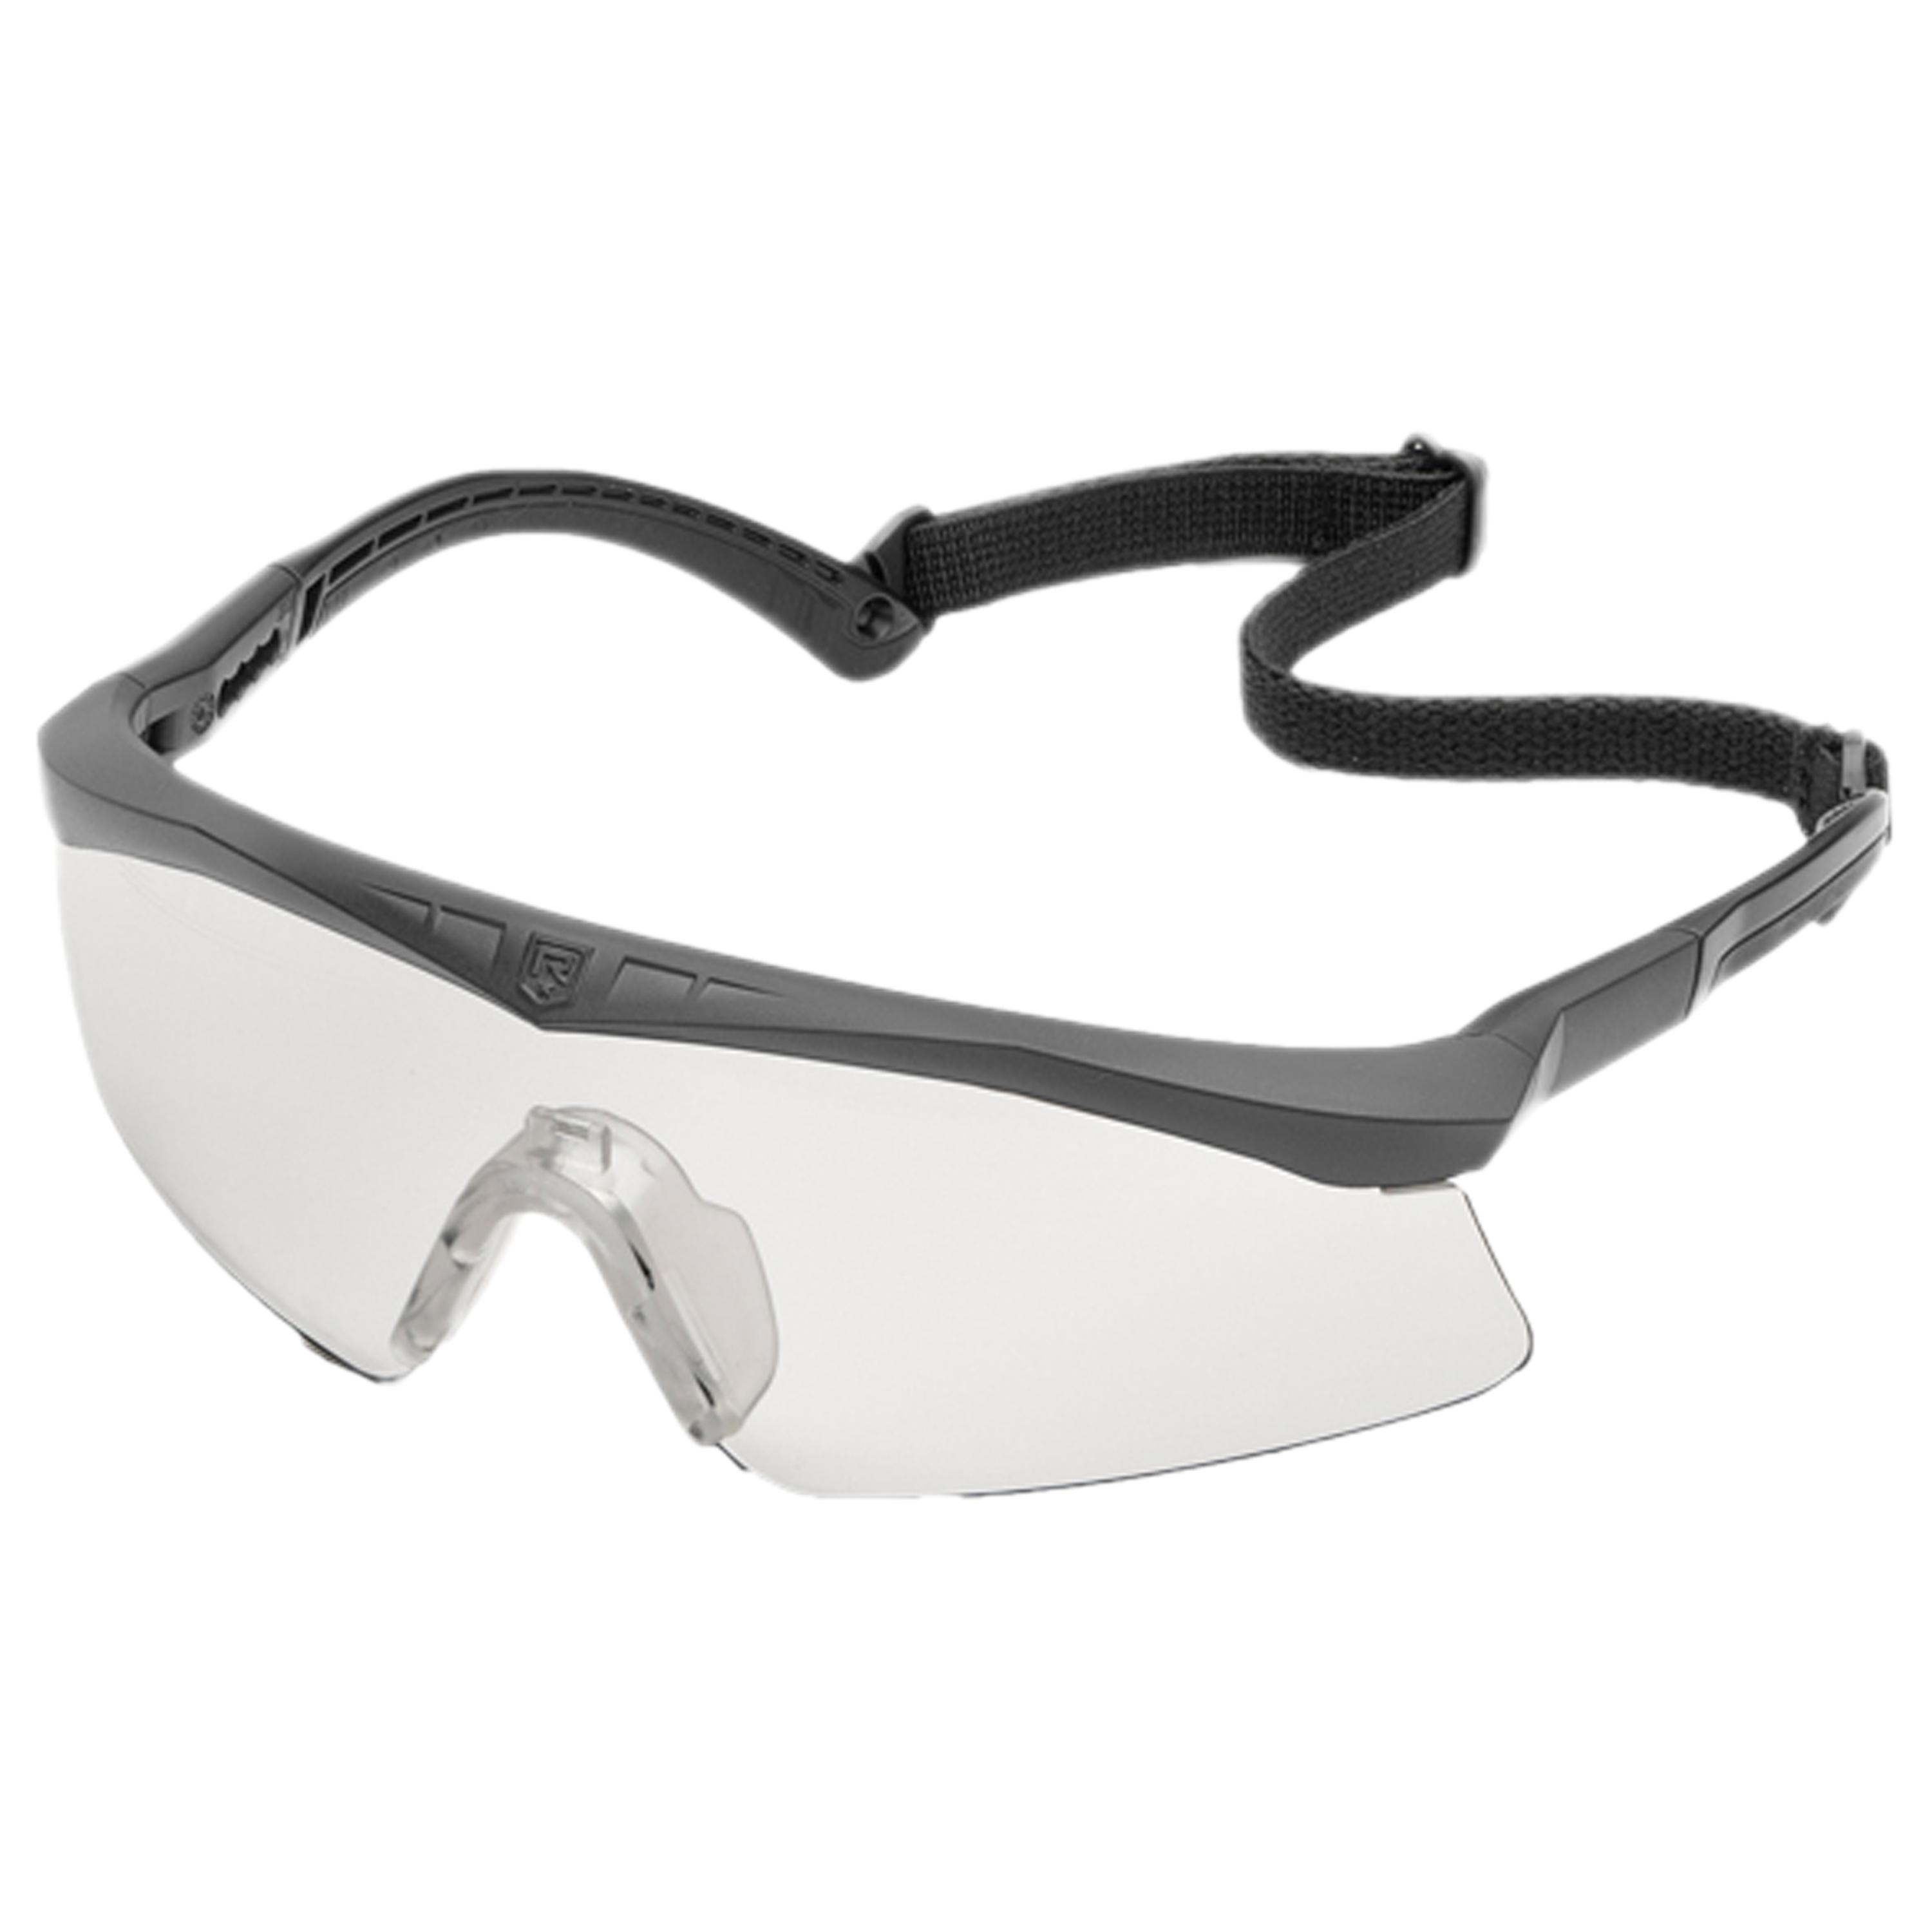 Revision Sawfly Glasses Basic Regular clear